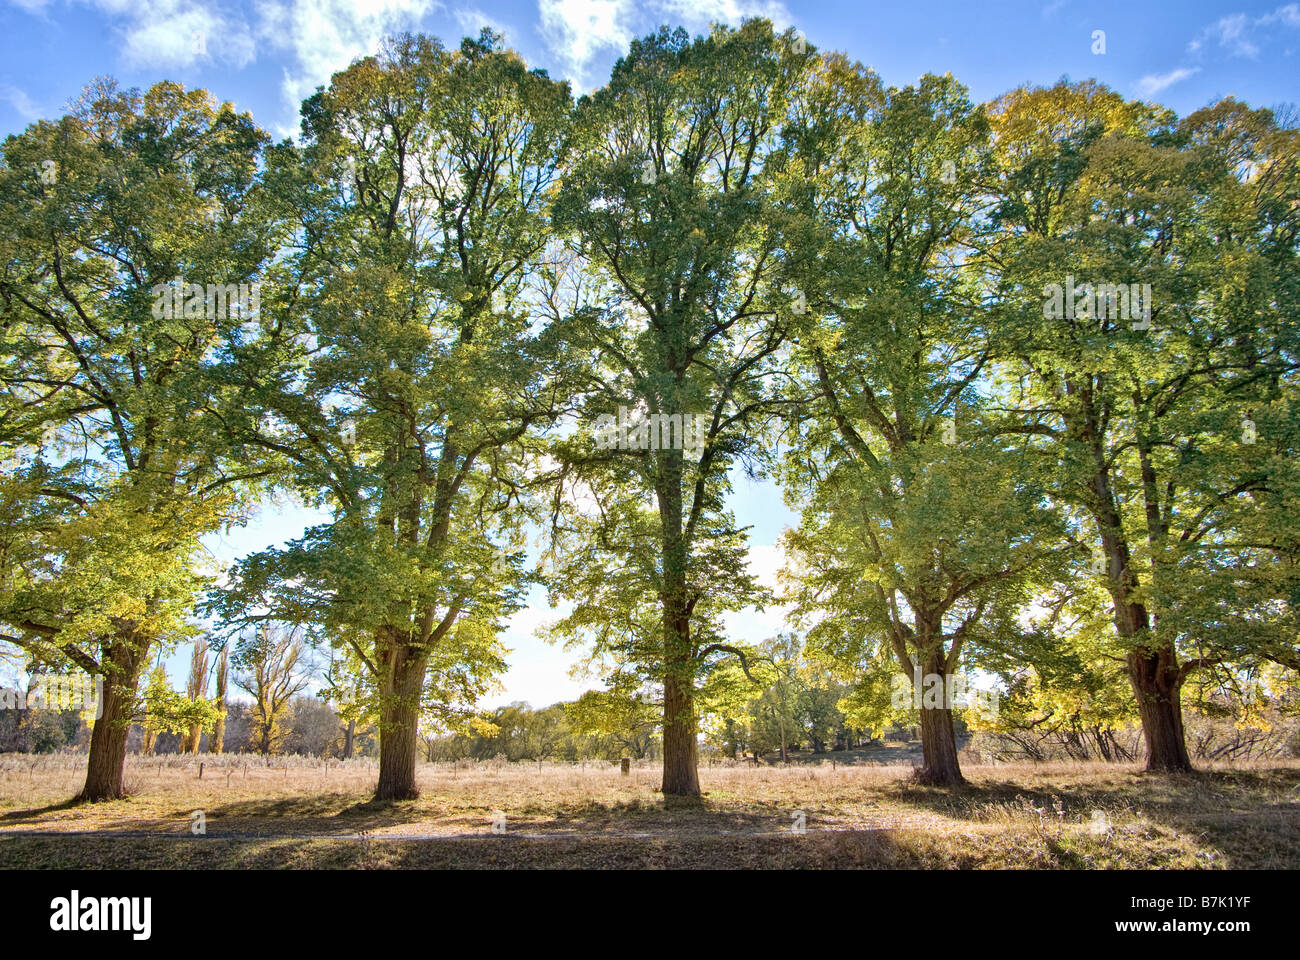 five tall trees in a row at sunrise - Stock Image